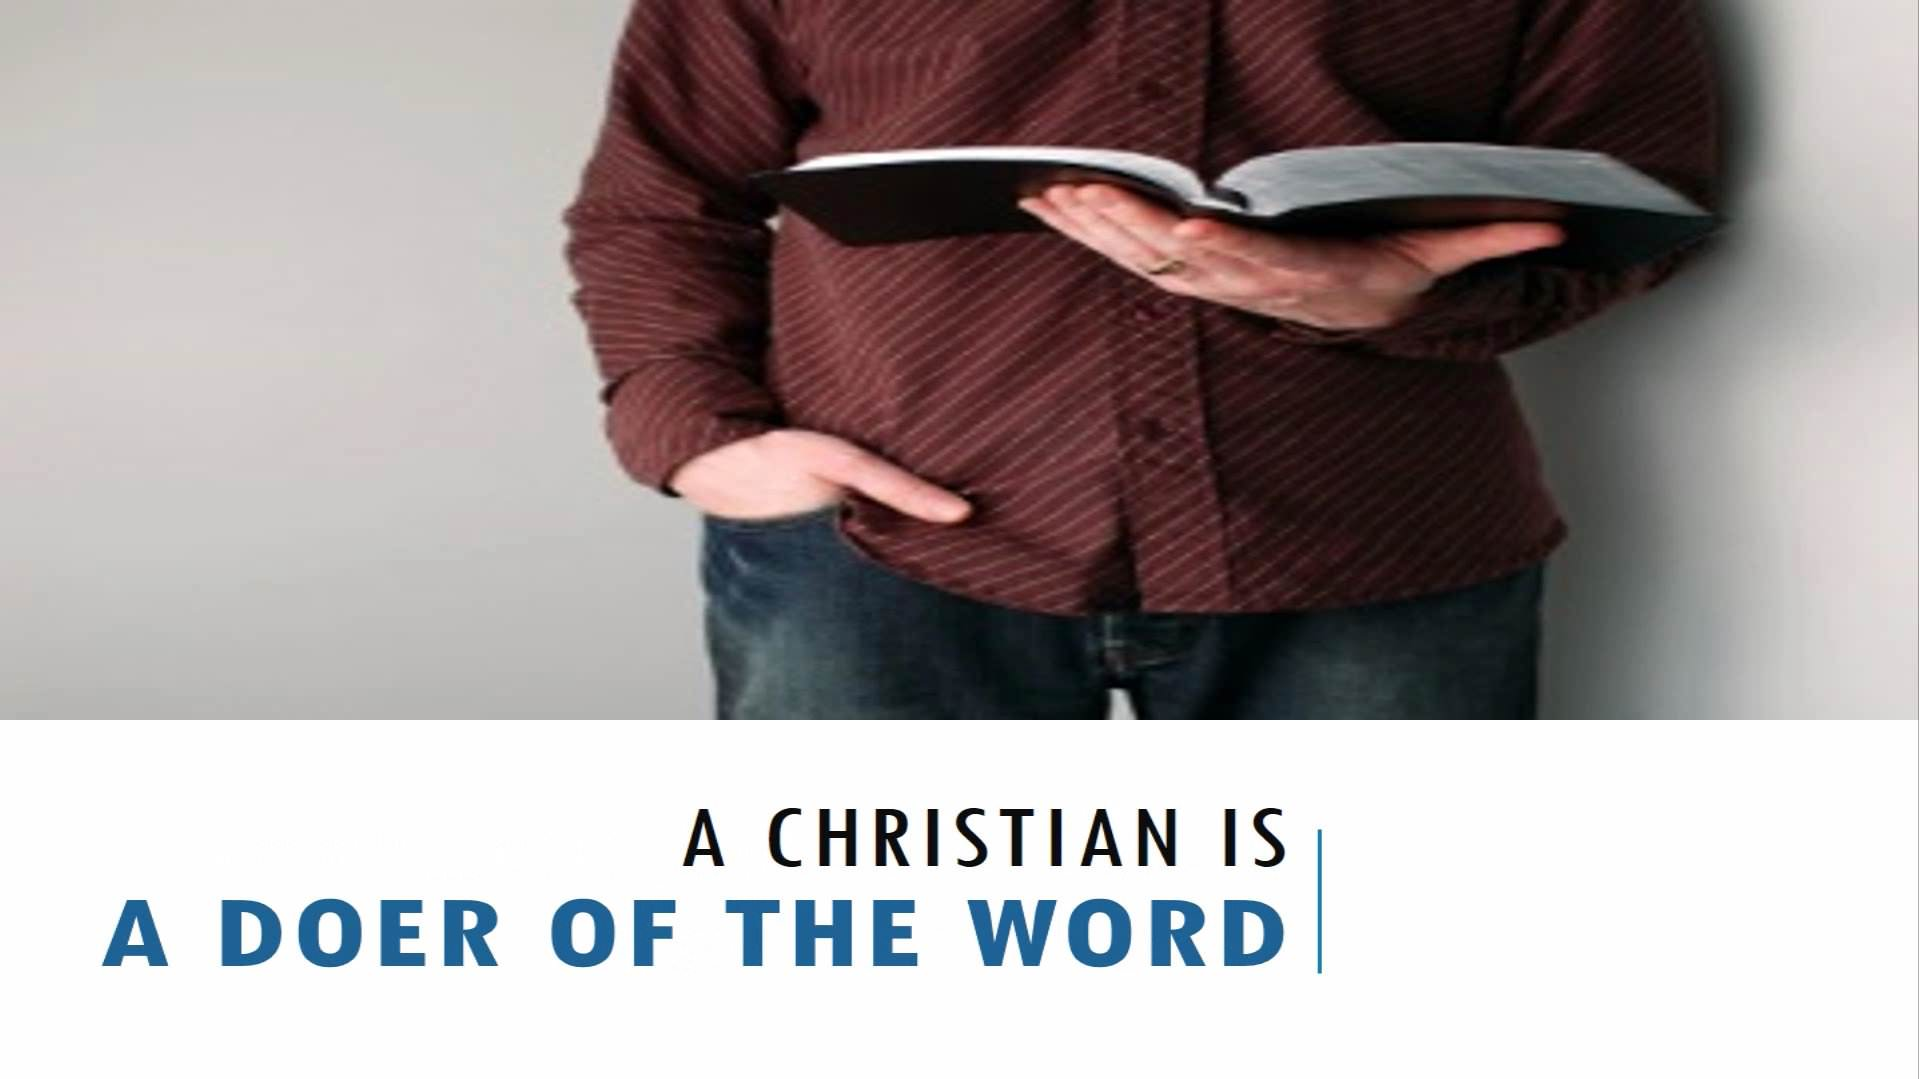 A Christian Is A Doer Of The Word